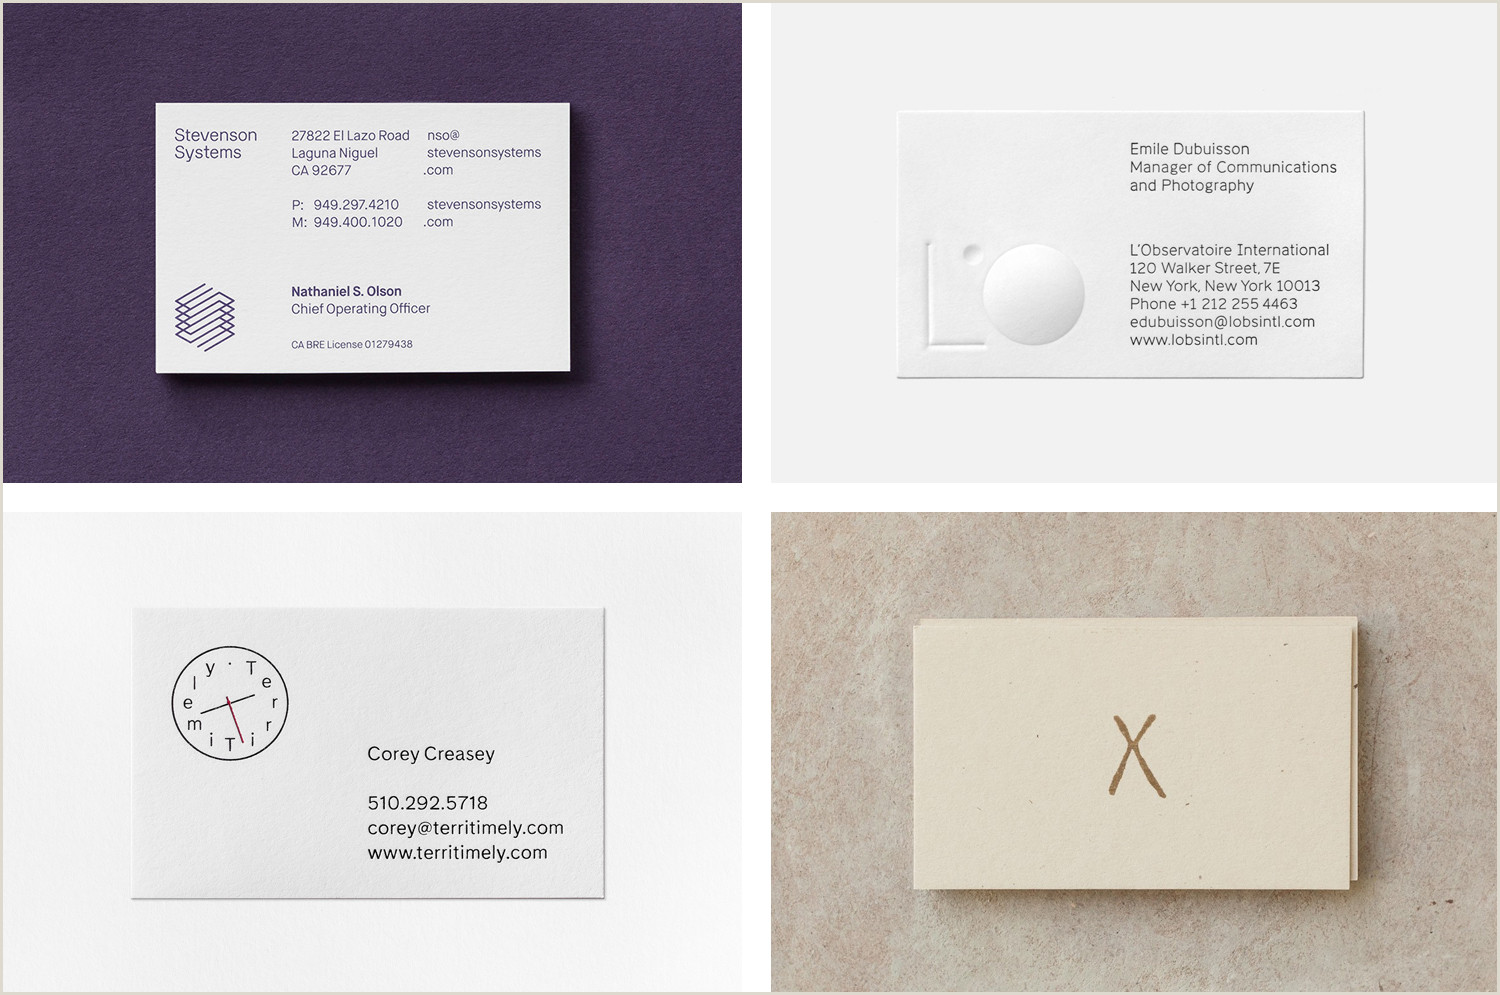 Best Business Cards Bofa Business Card Design Gallery — Bp&o